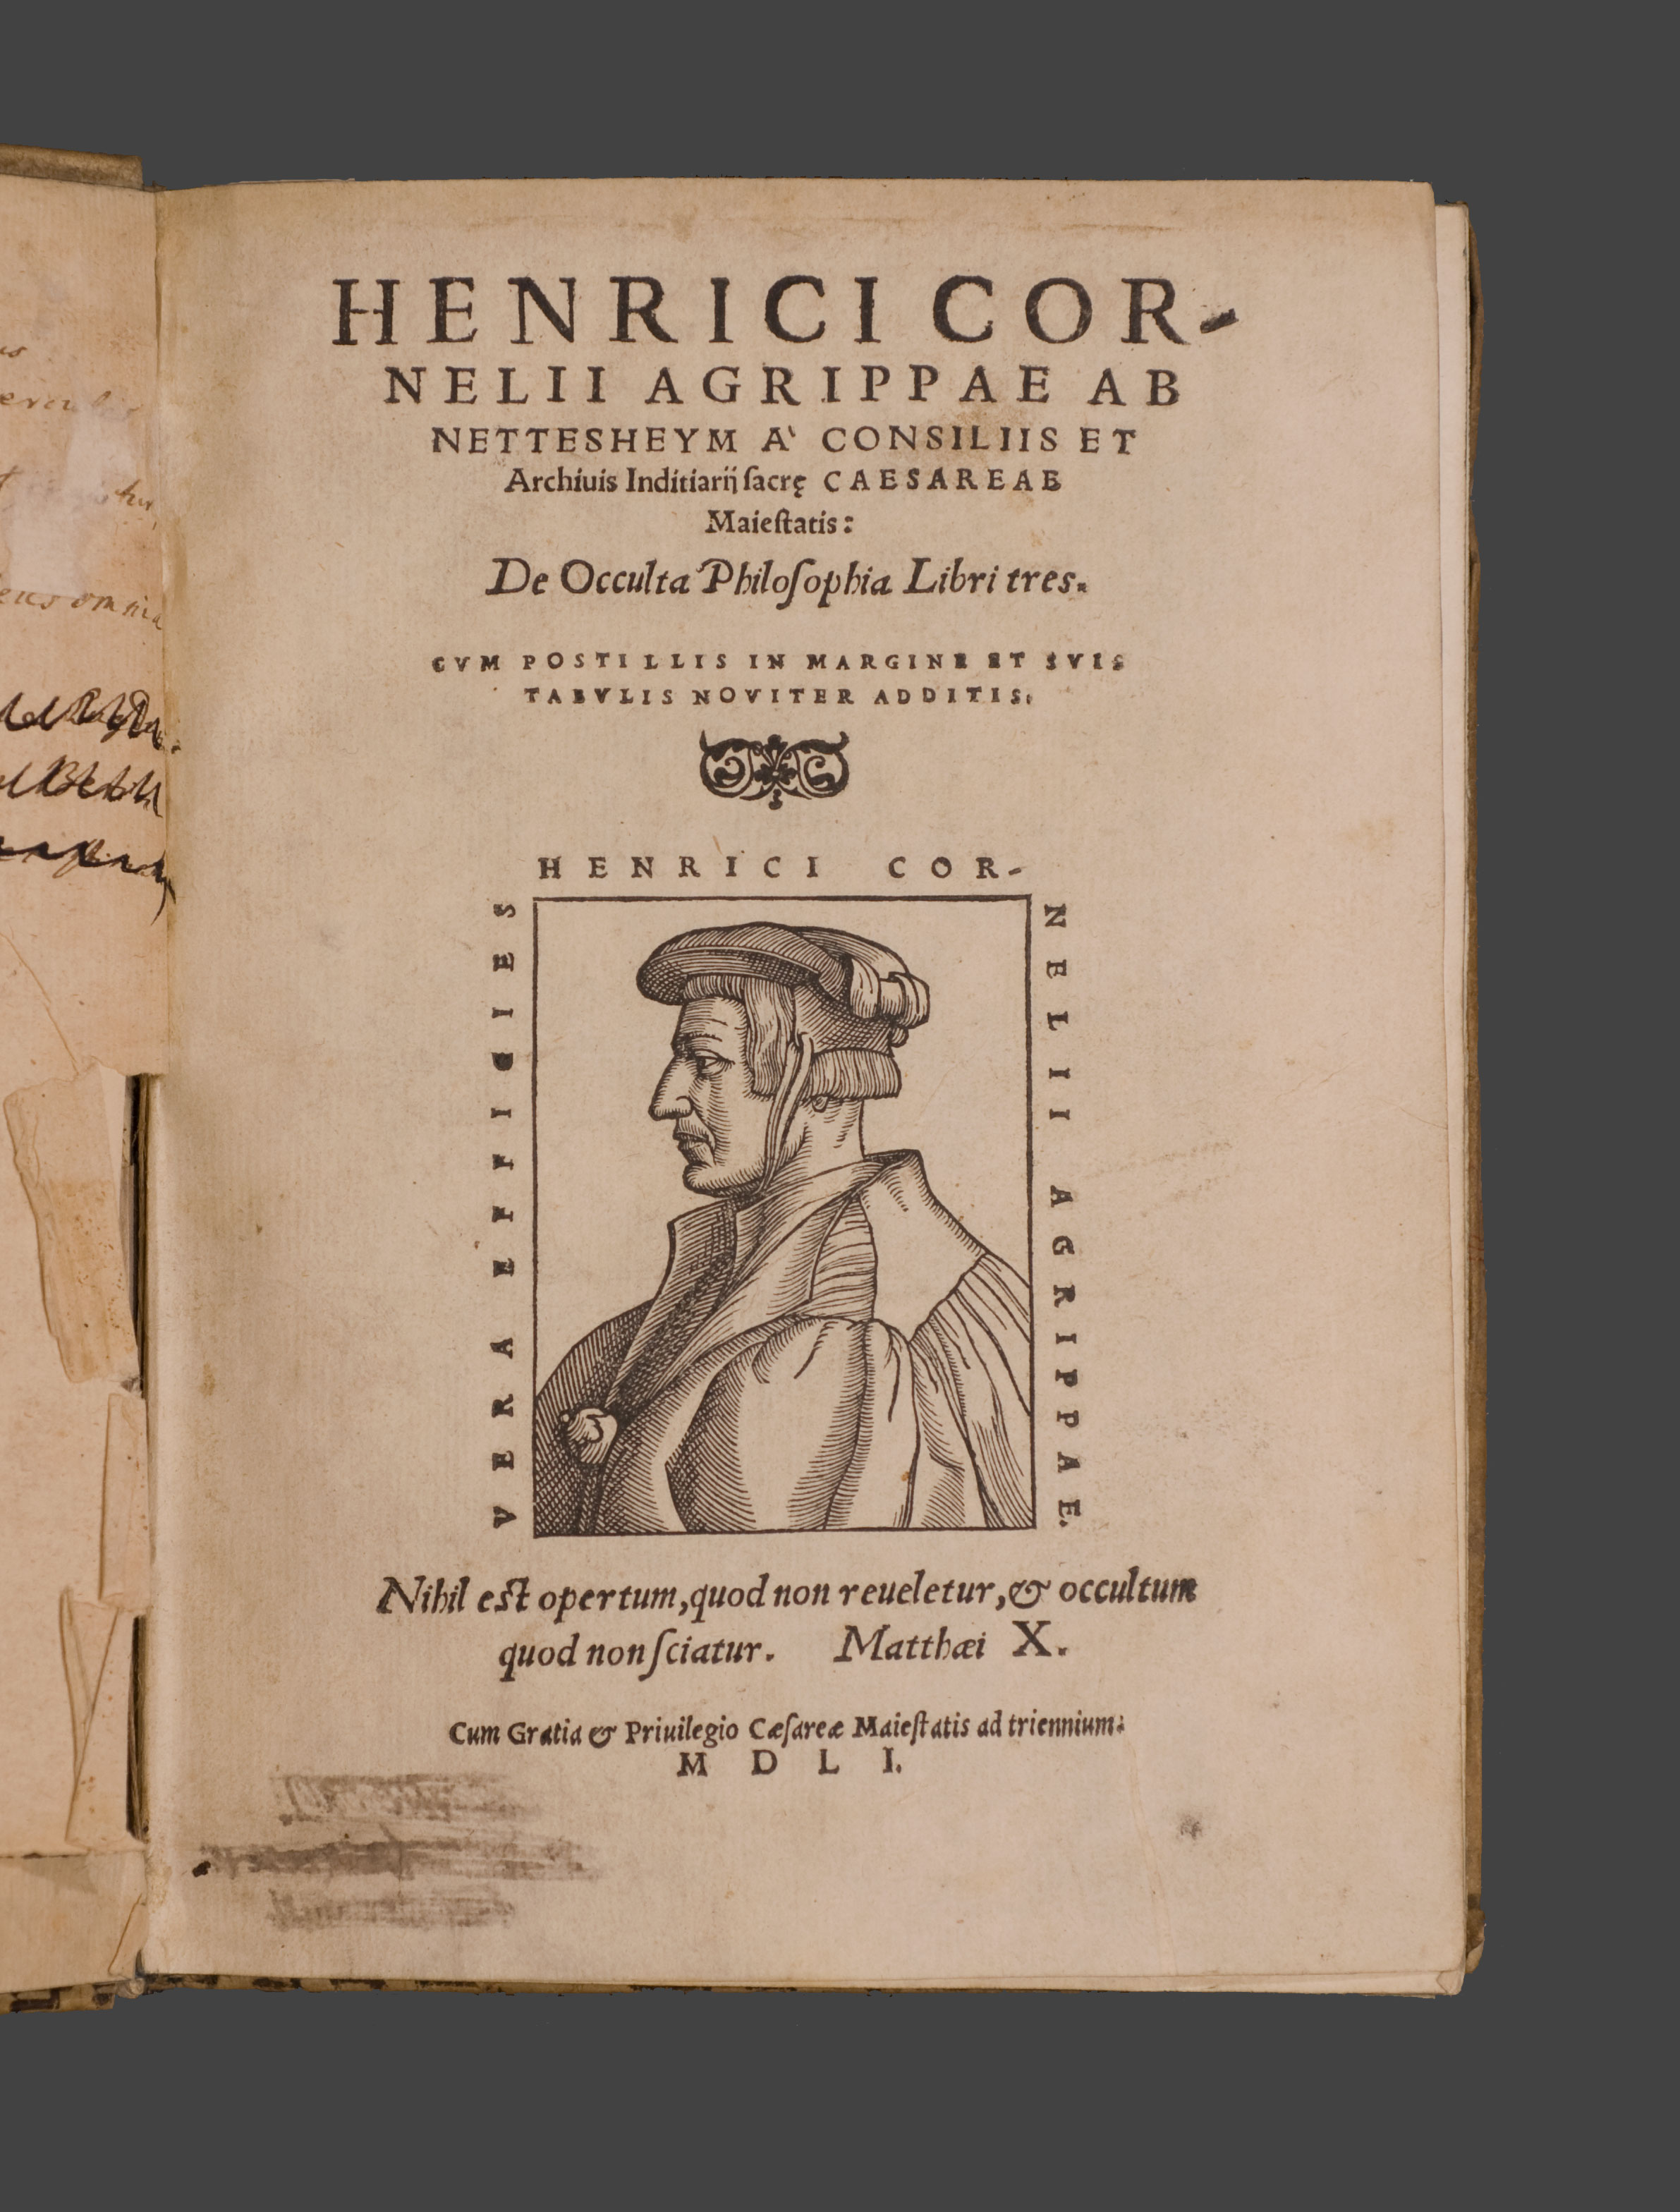 cambridge authors acirc marlowe doctor faustus and magic the title page of heinrich cornelius agrippa of nettesheim de occulta philosophia libri tres